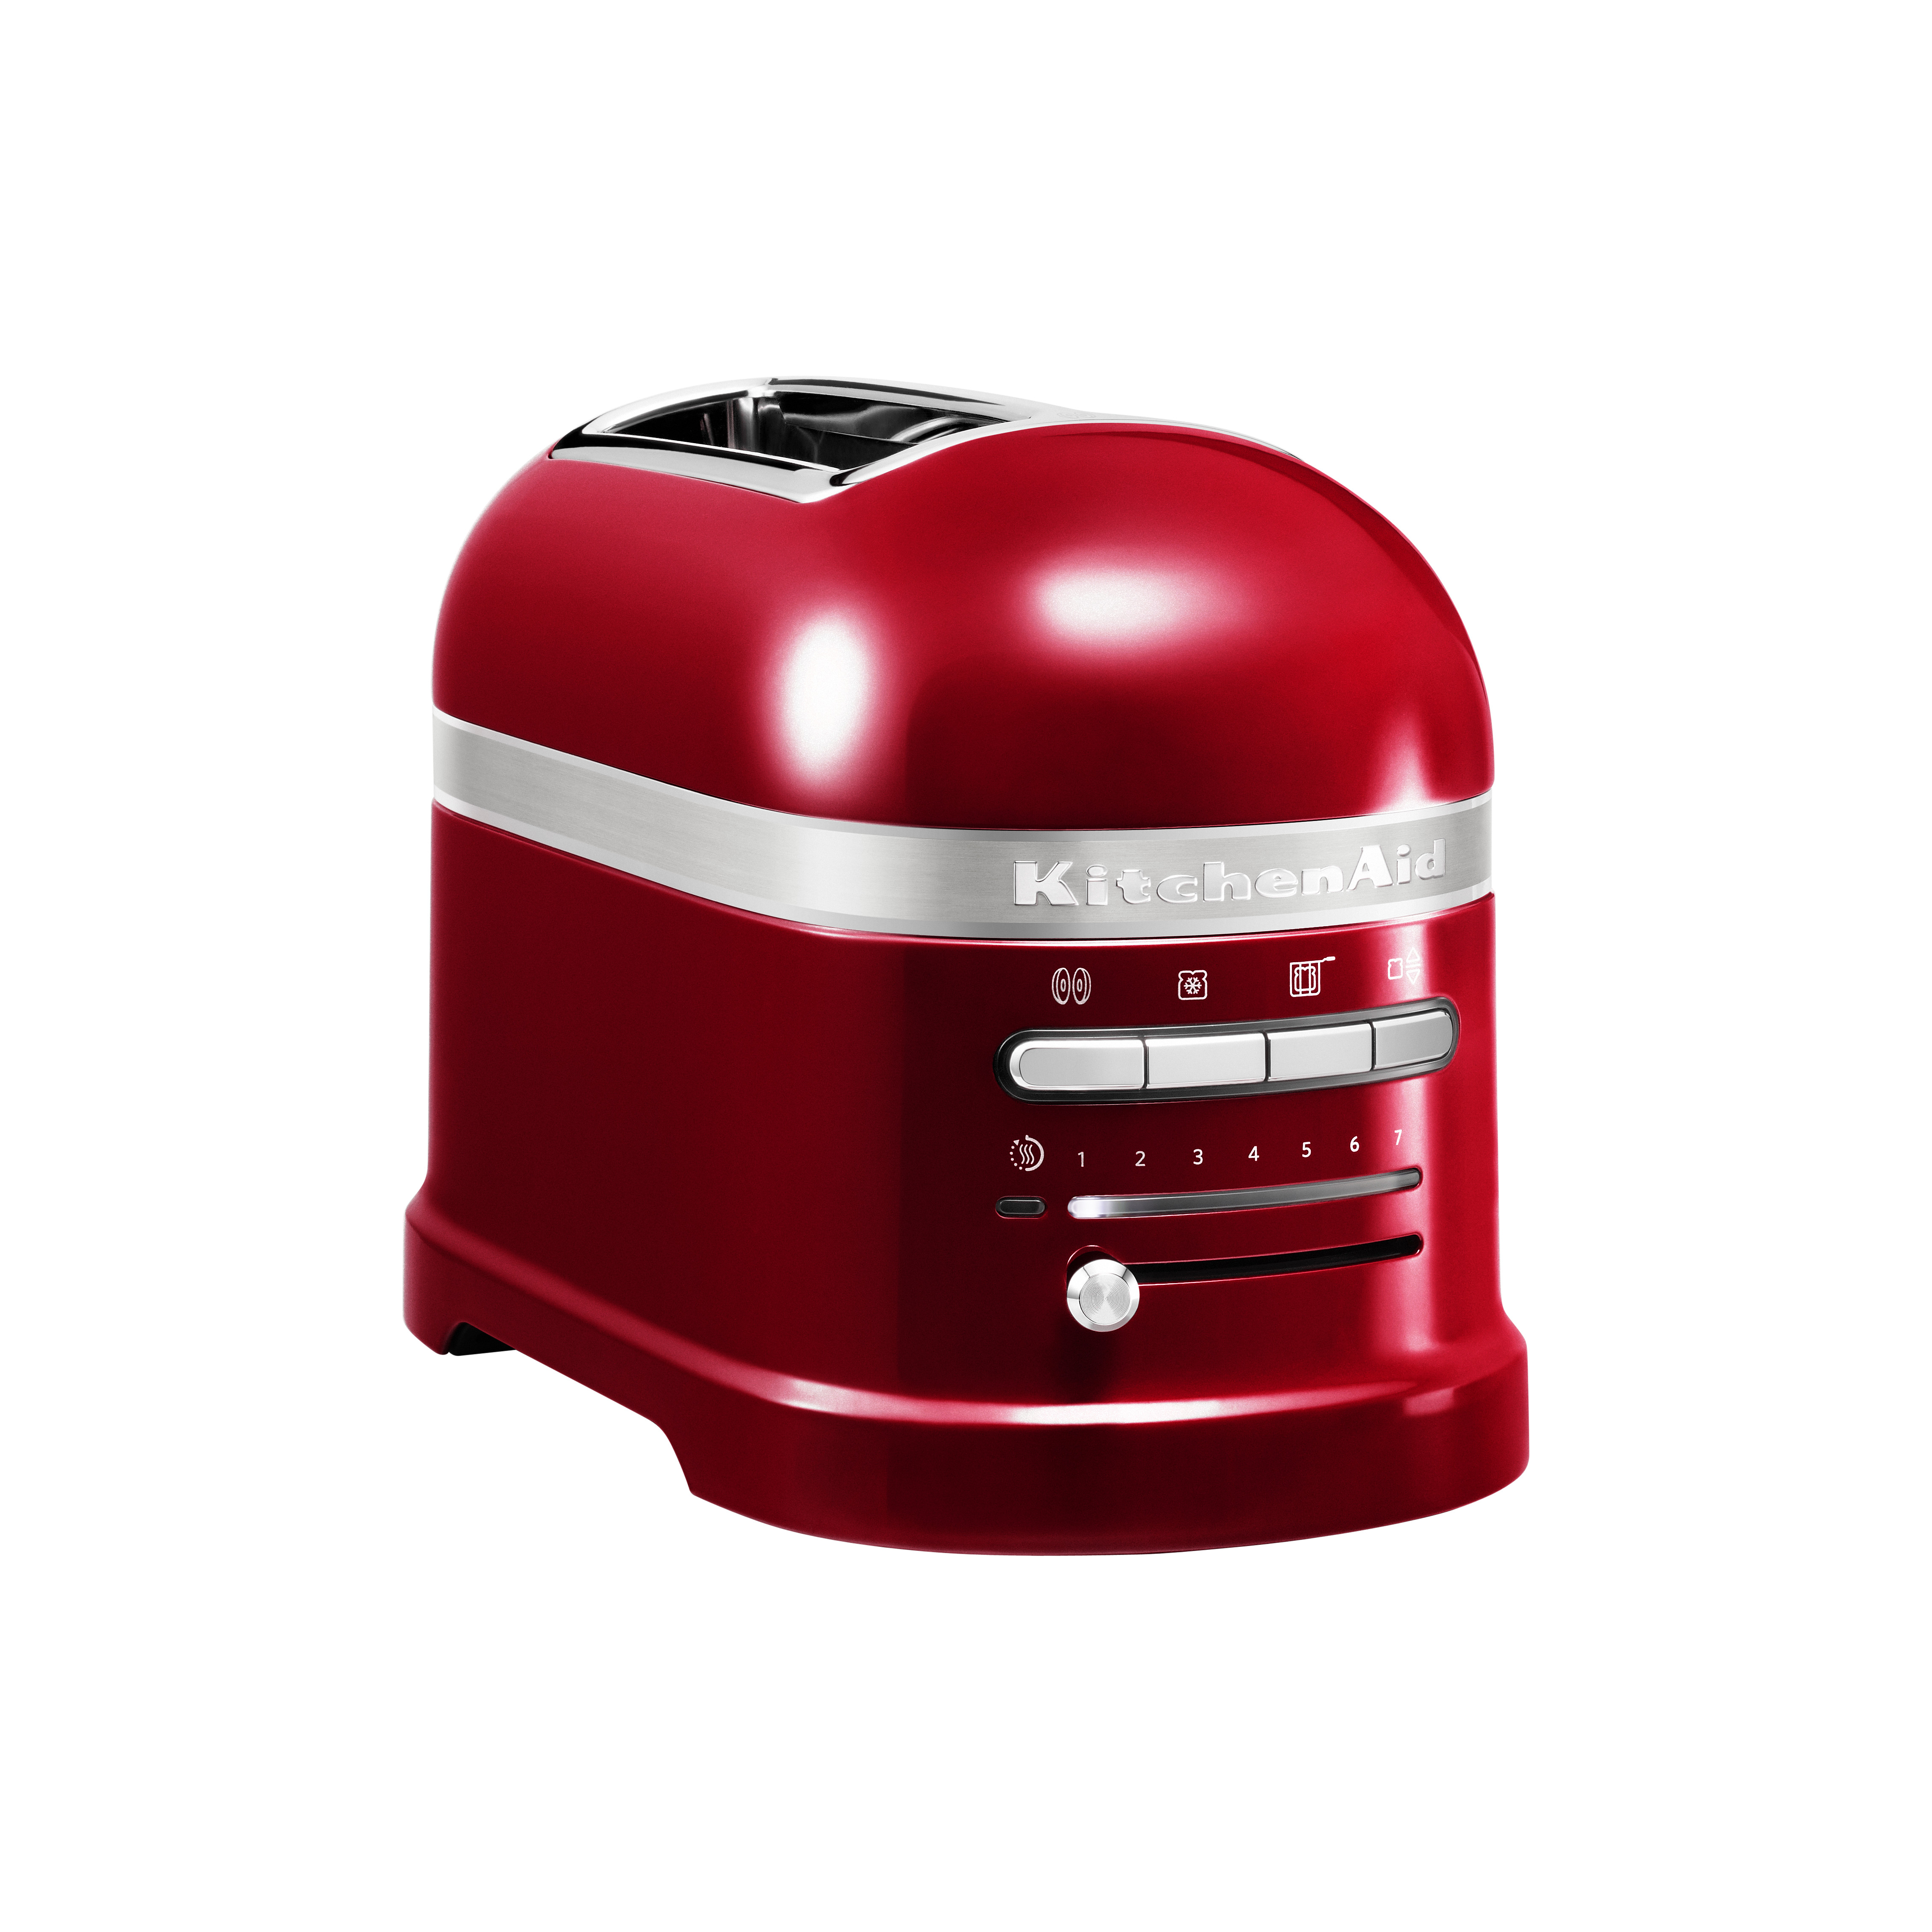 KitchenAid - Torradeira Proline - R$ 999